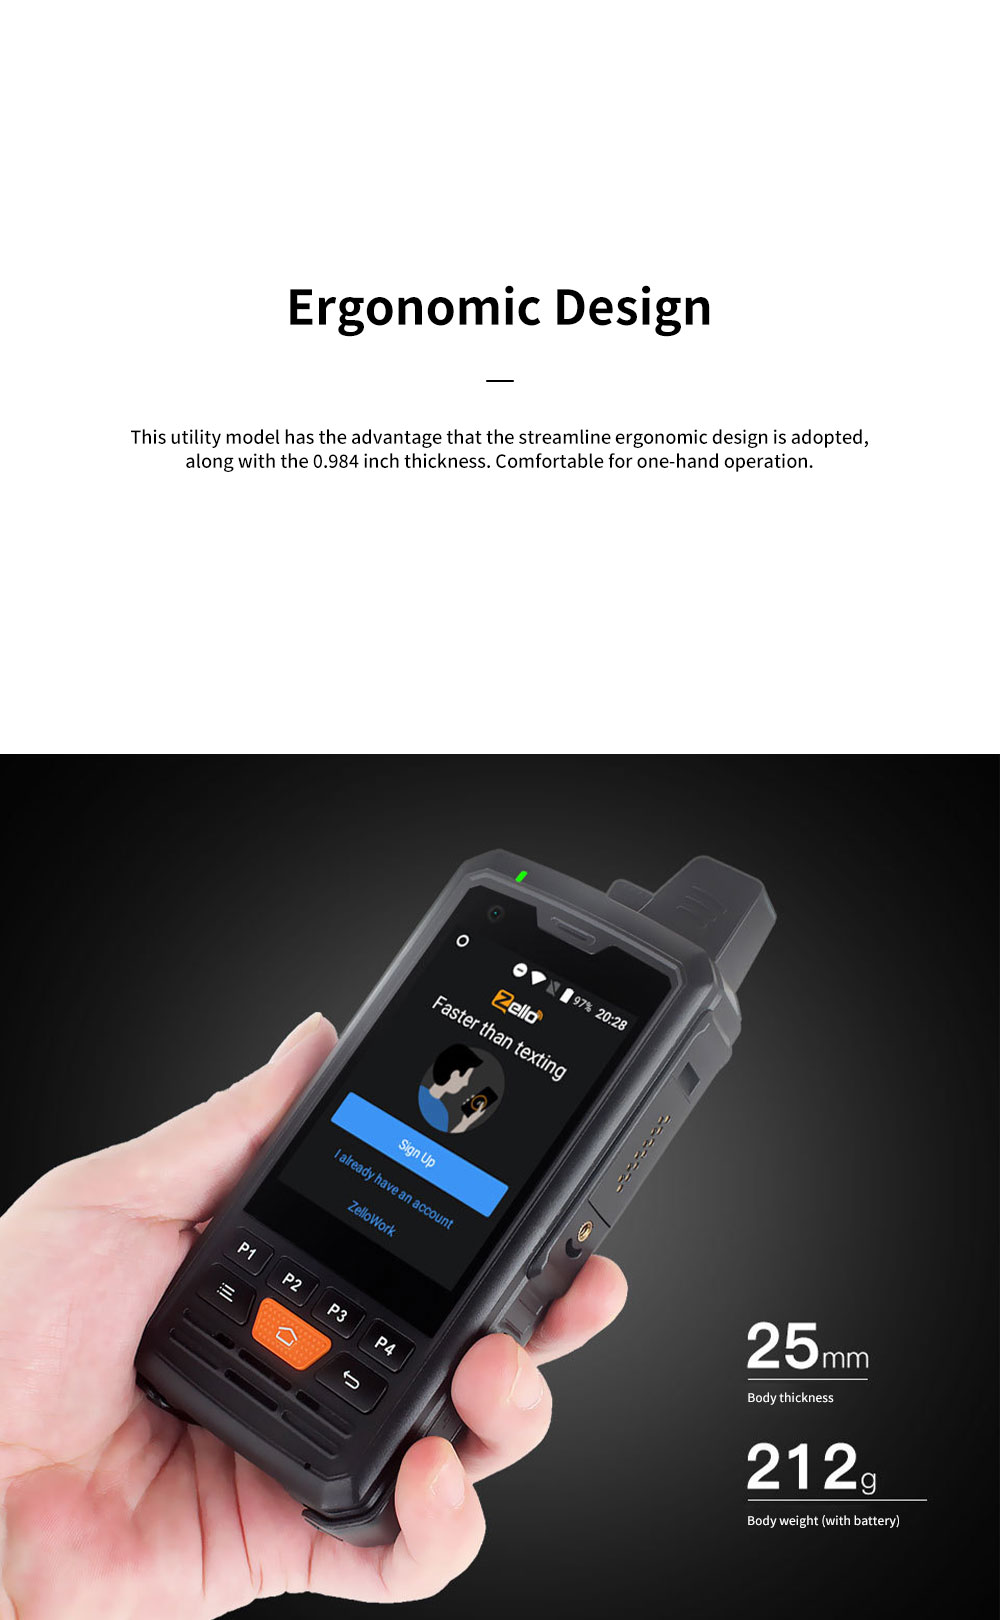 4G PPT Smart Interphone Zella Intercom Phone Device Android 6.0 Available for 2G, 3G, 4G and WIFI Connection 7